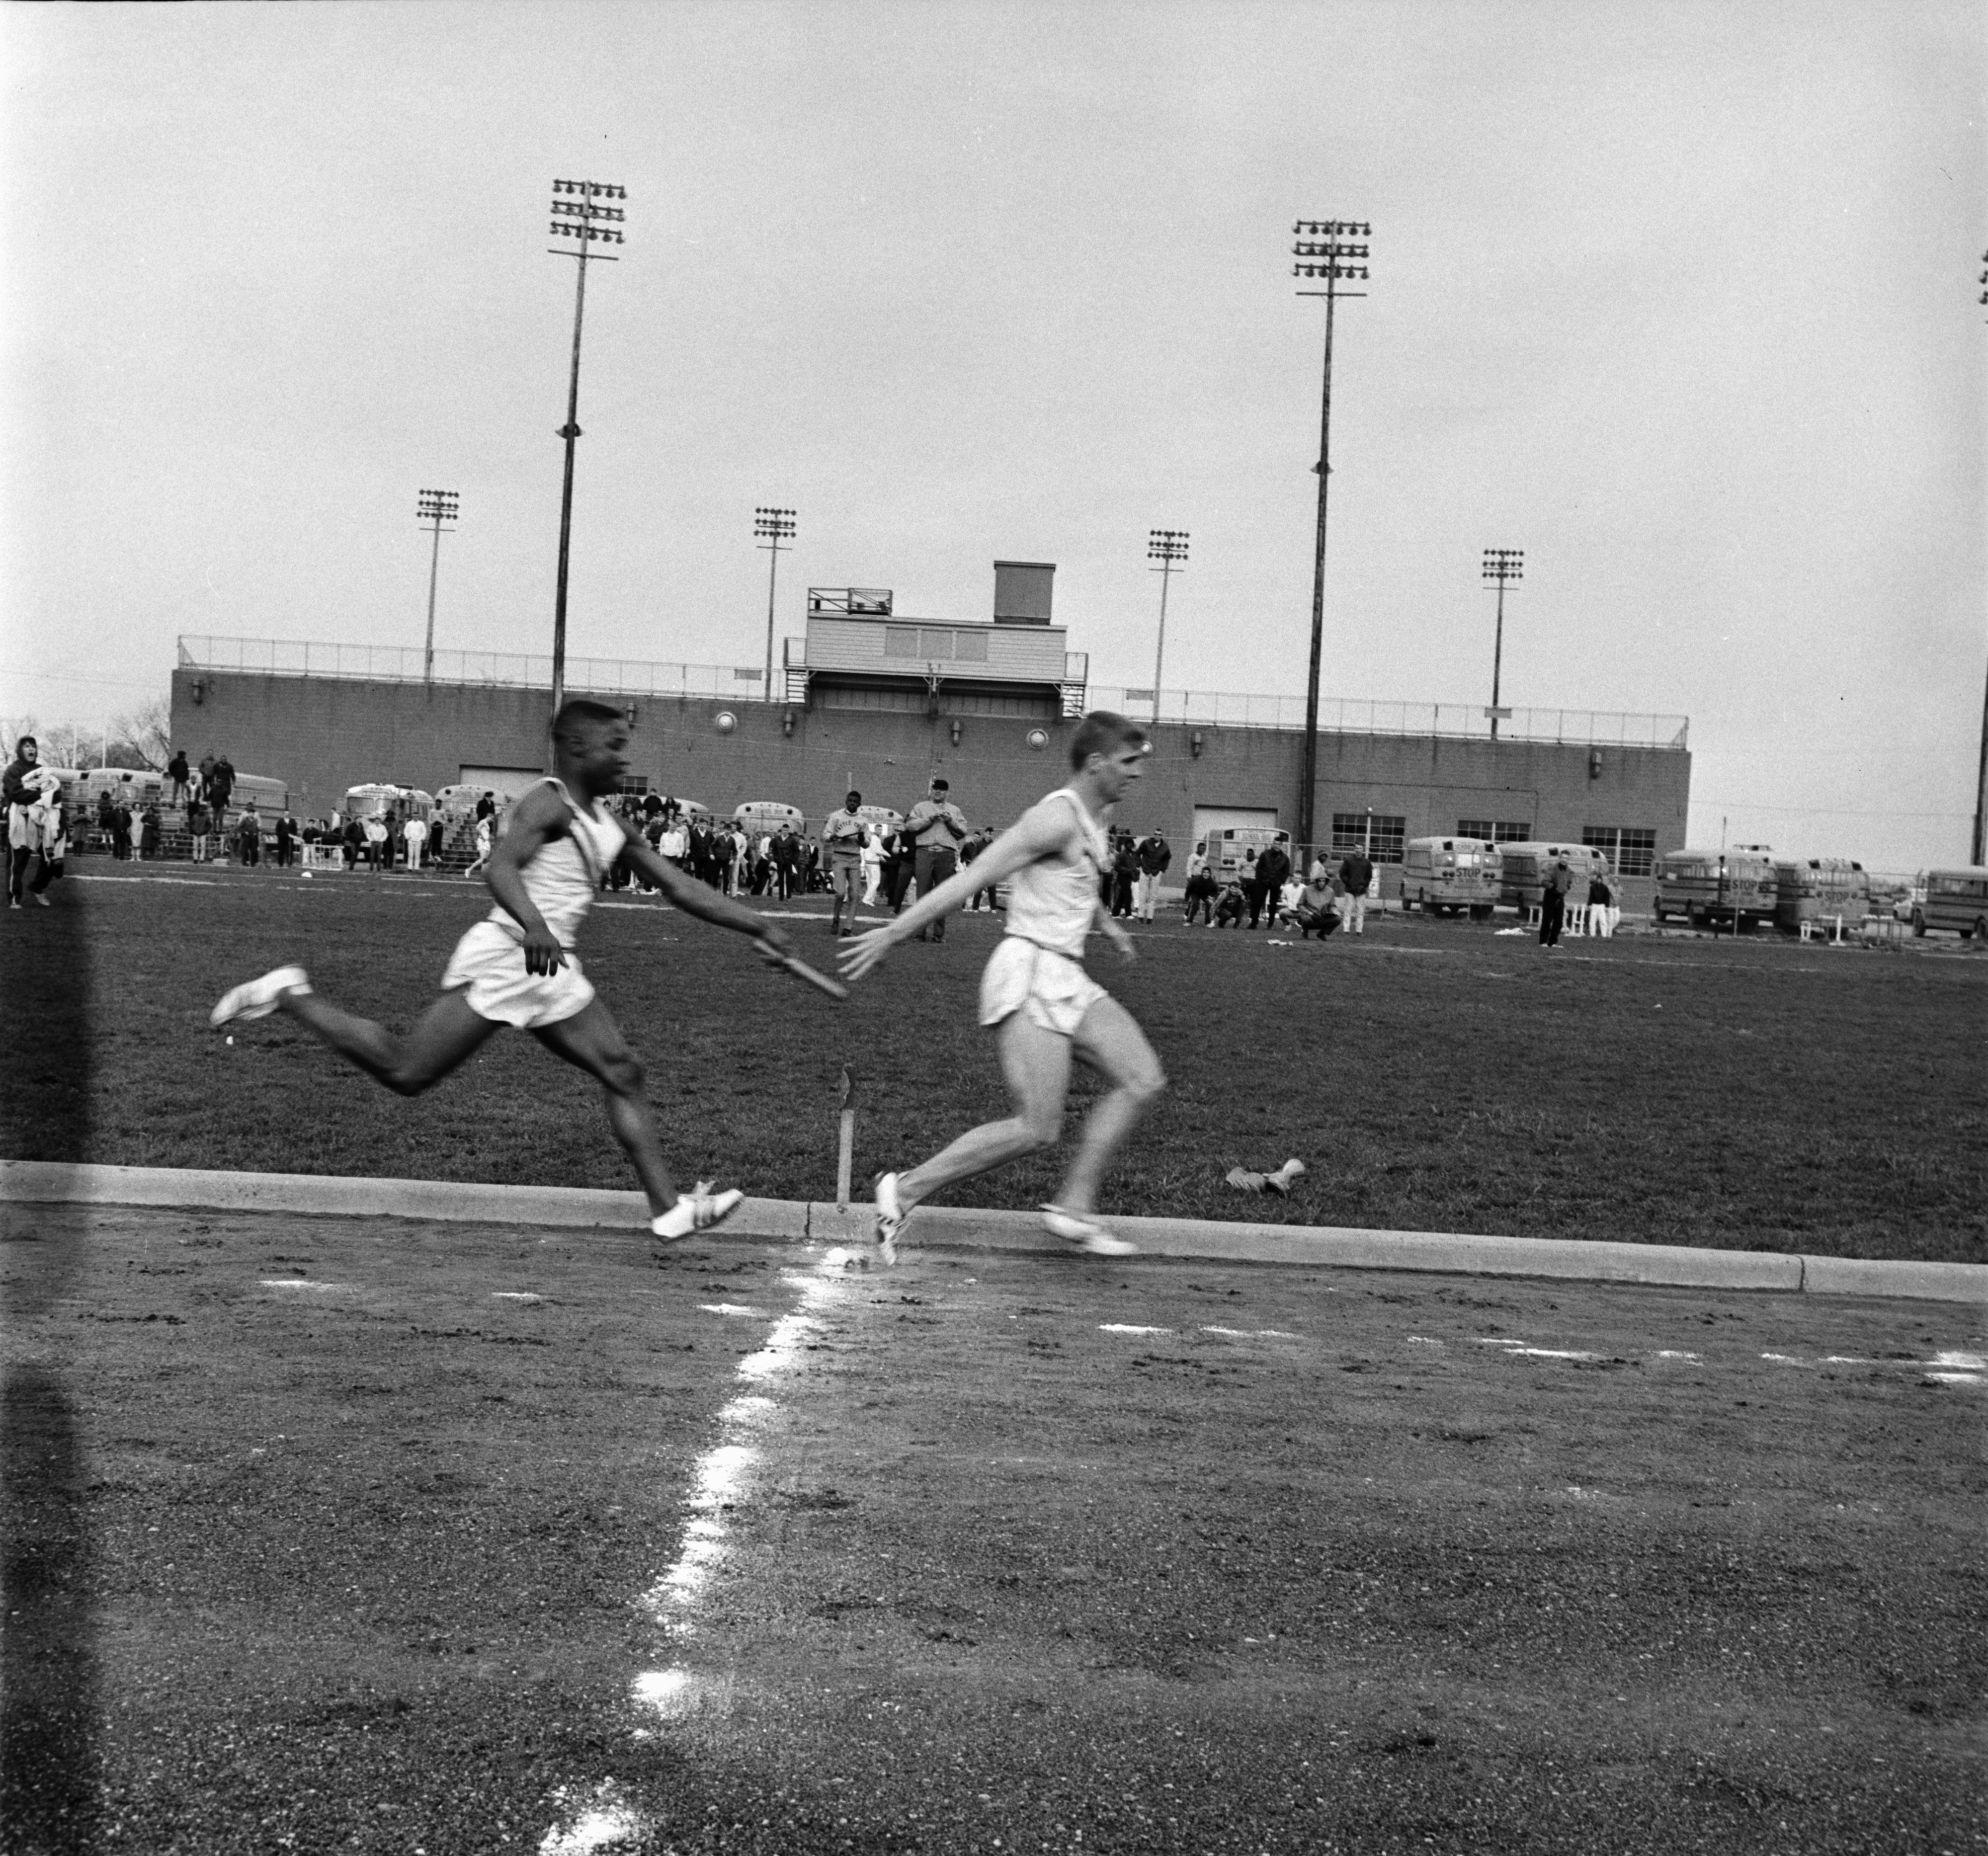 Mike Sims and Ed Oxley Run Relay for Ann Arbor High School, April 1966 image